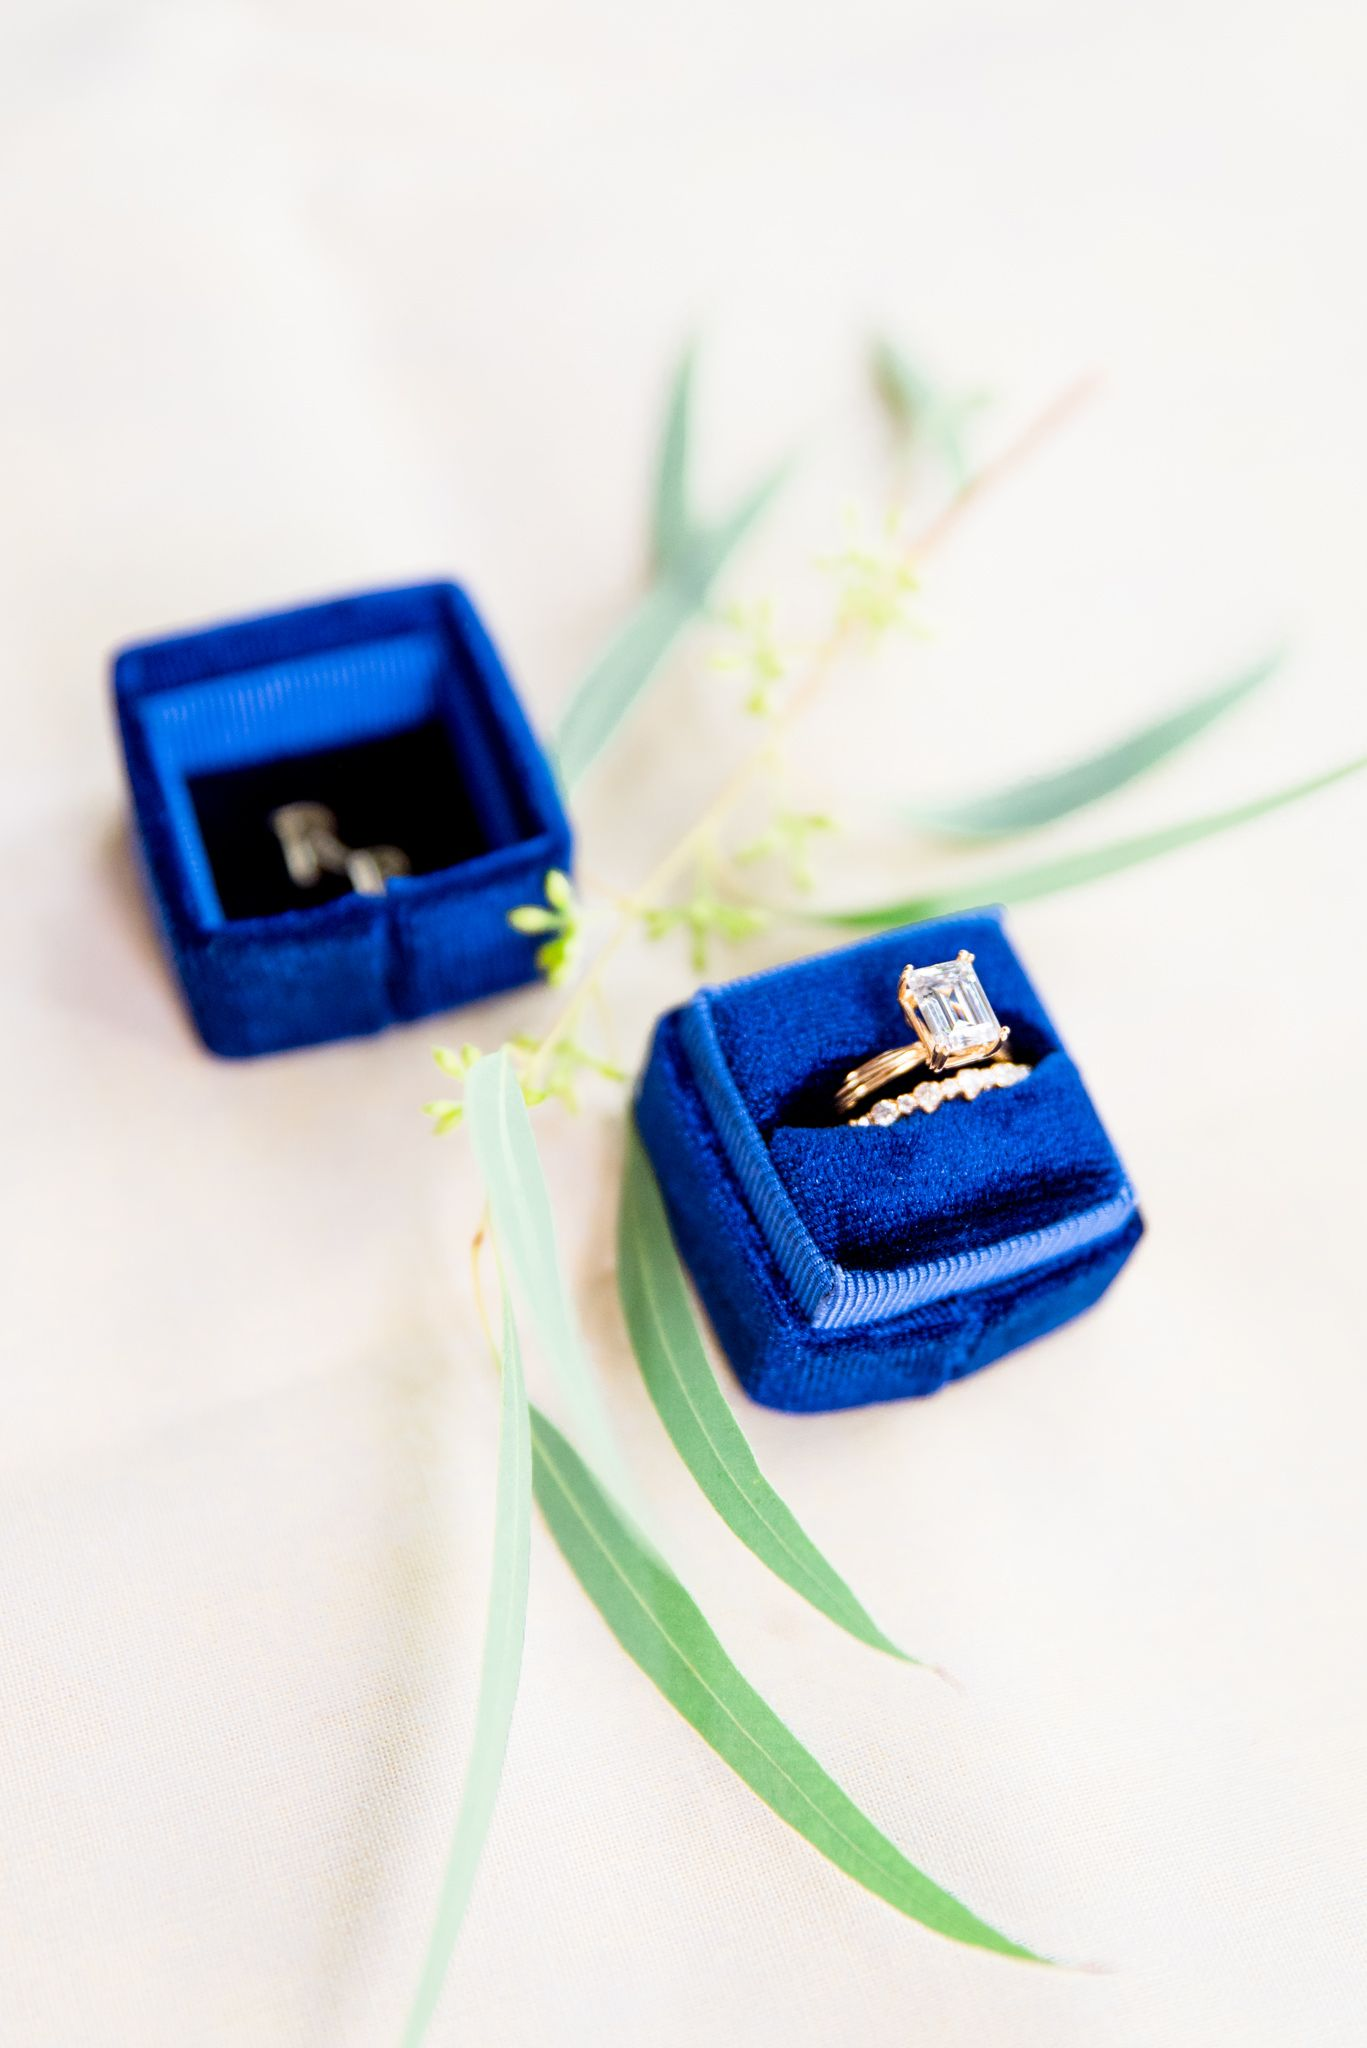 yellow gold emerald cut engagement ring in a blue Richter and Phillips box next to some loose greenery